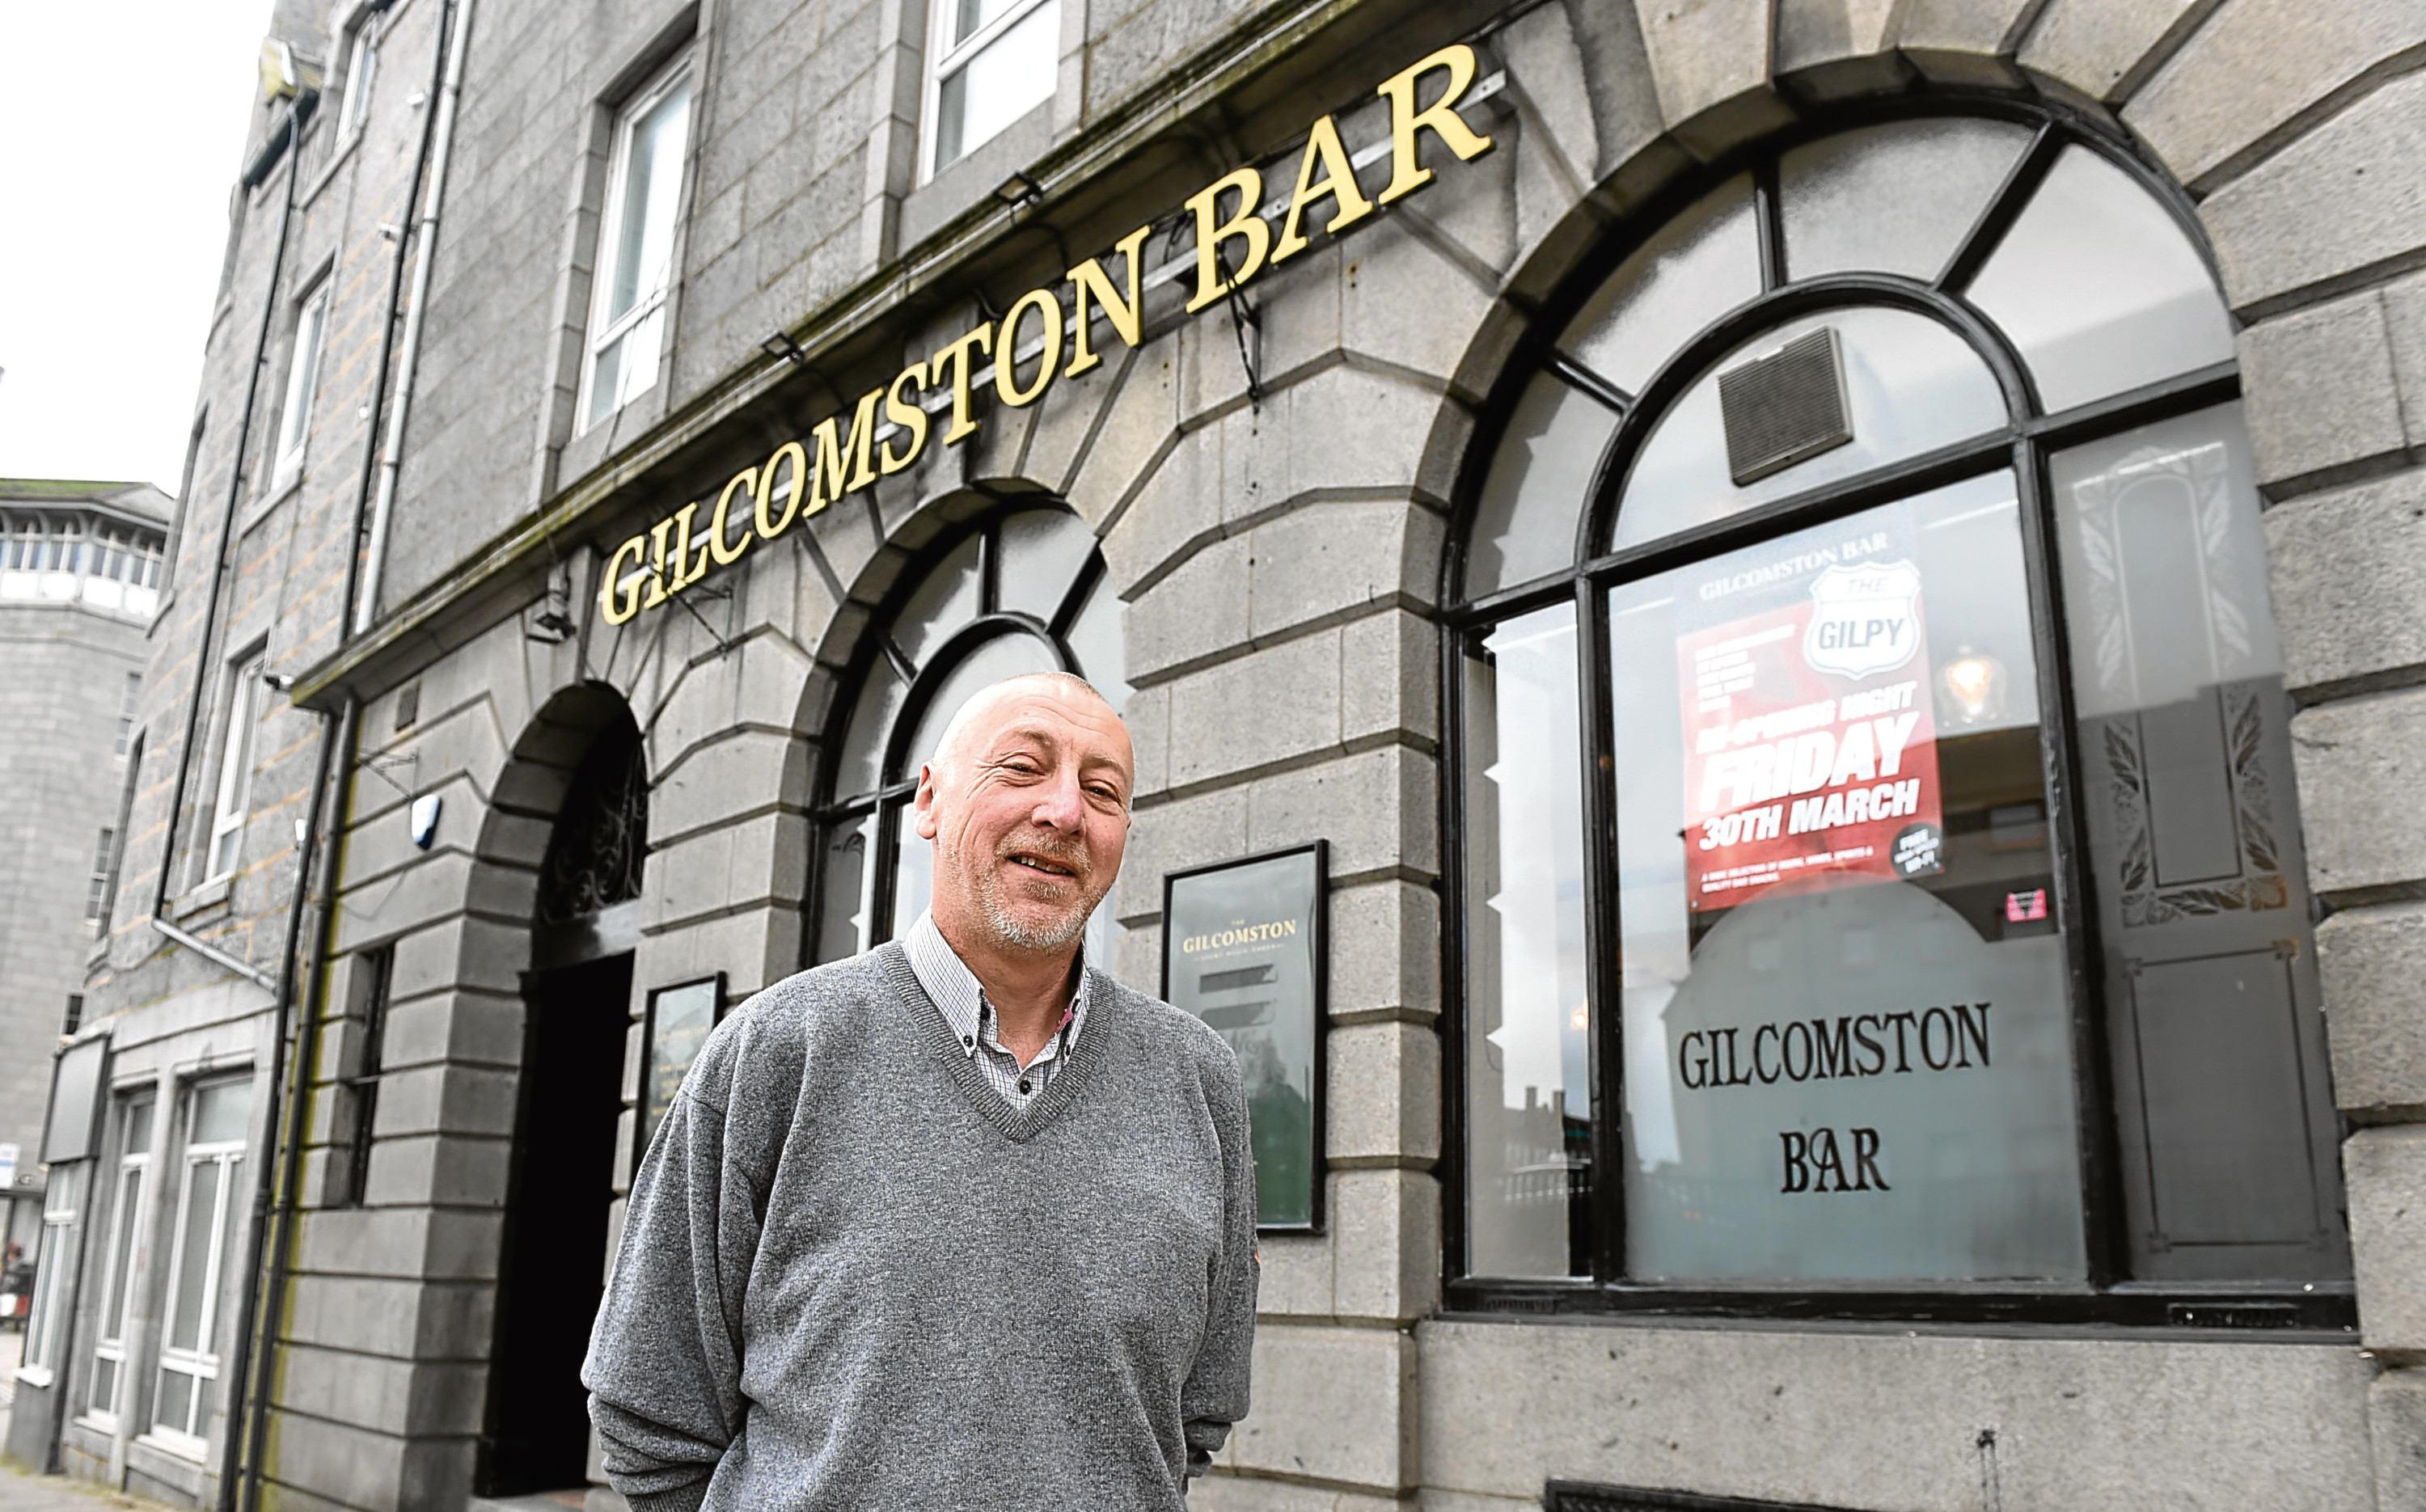 Ally is the new tenant at the Gilcomston Bar.